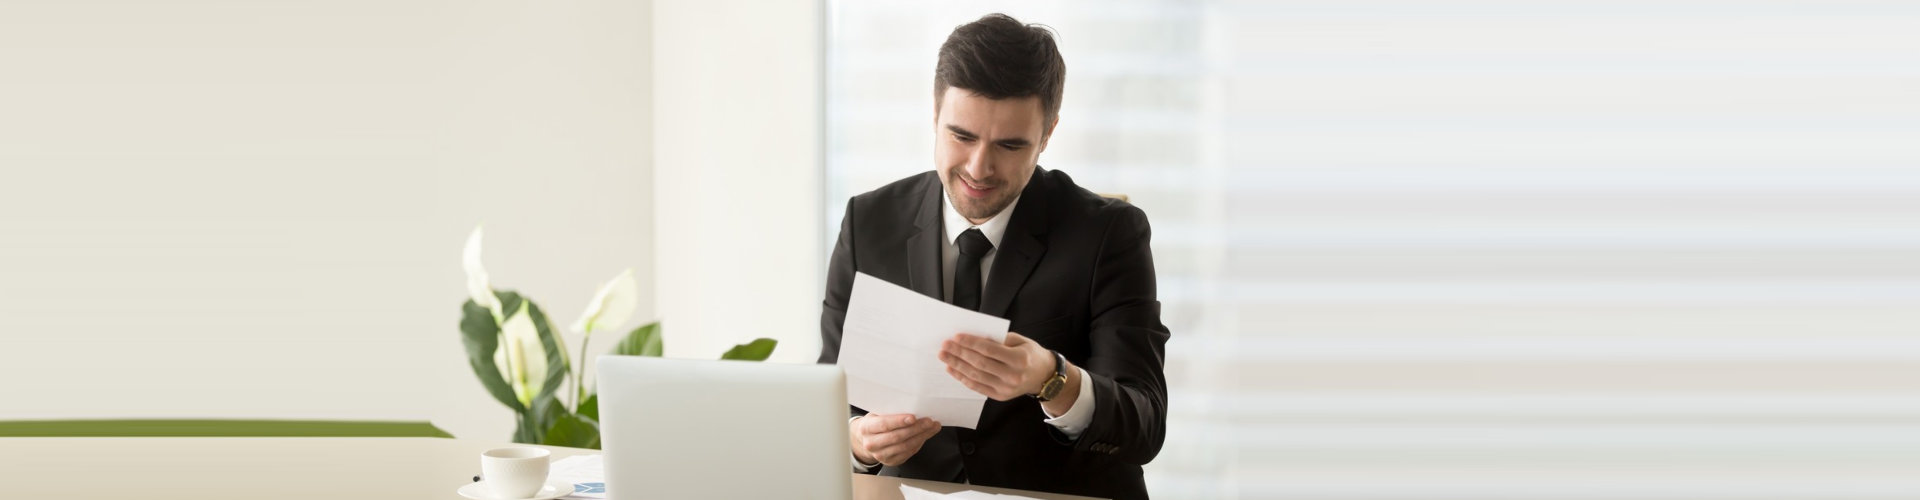 a man looking at the paper and smiling